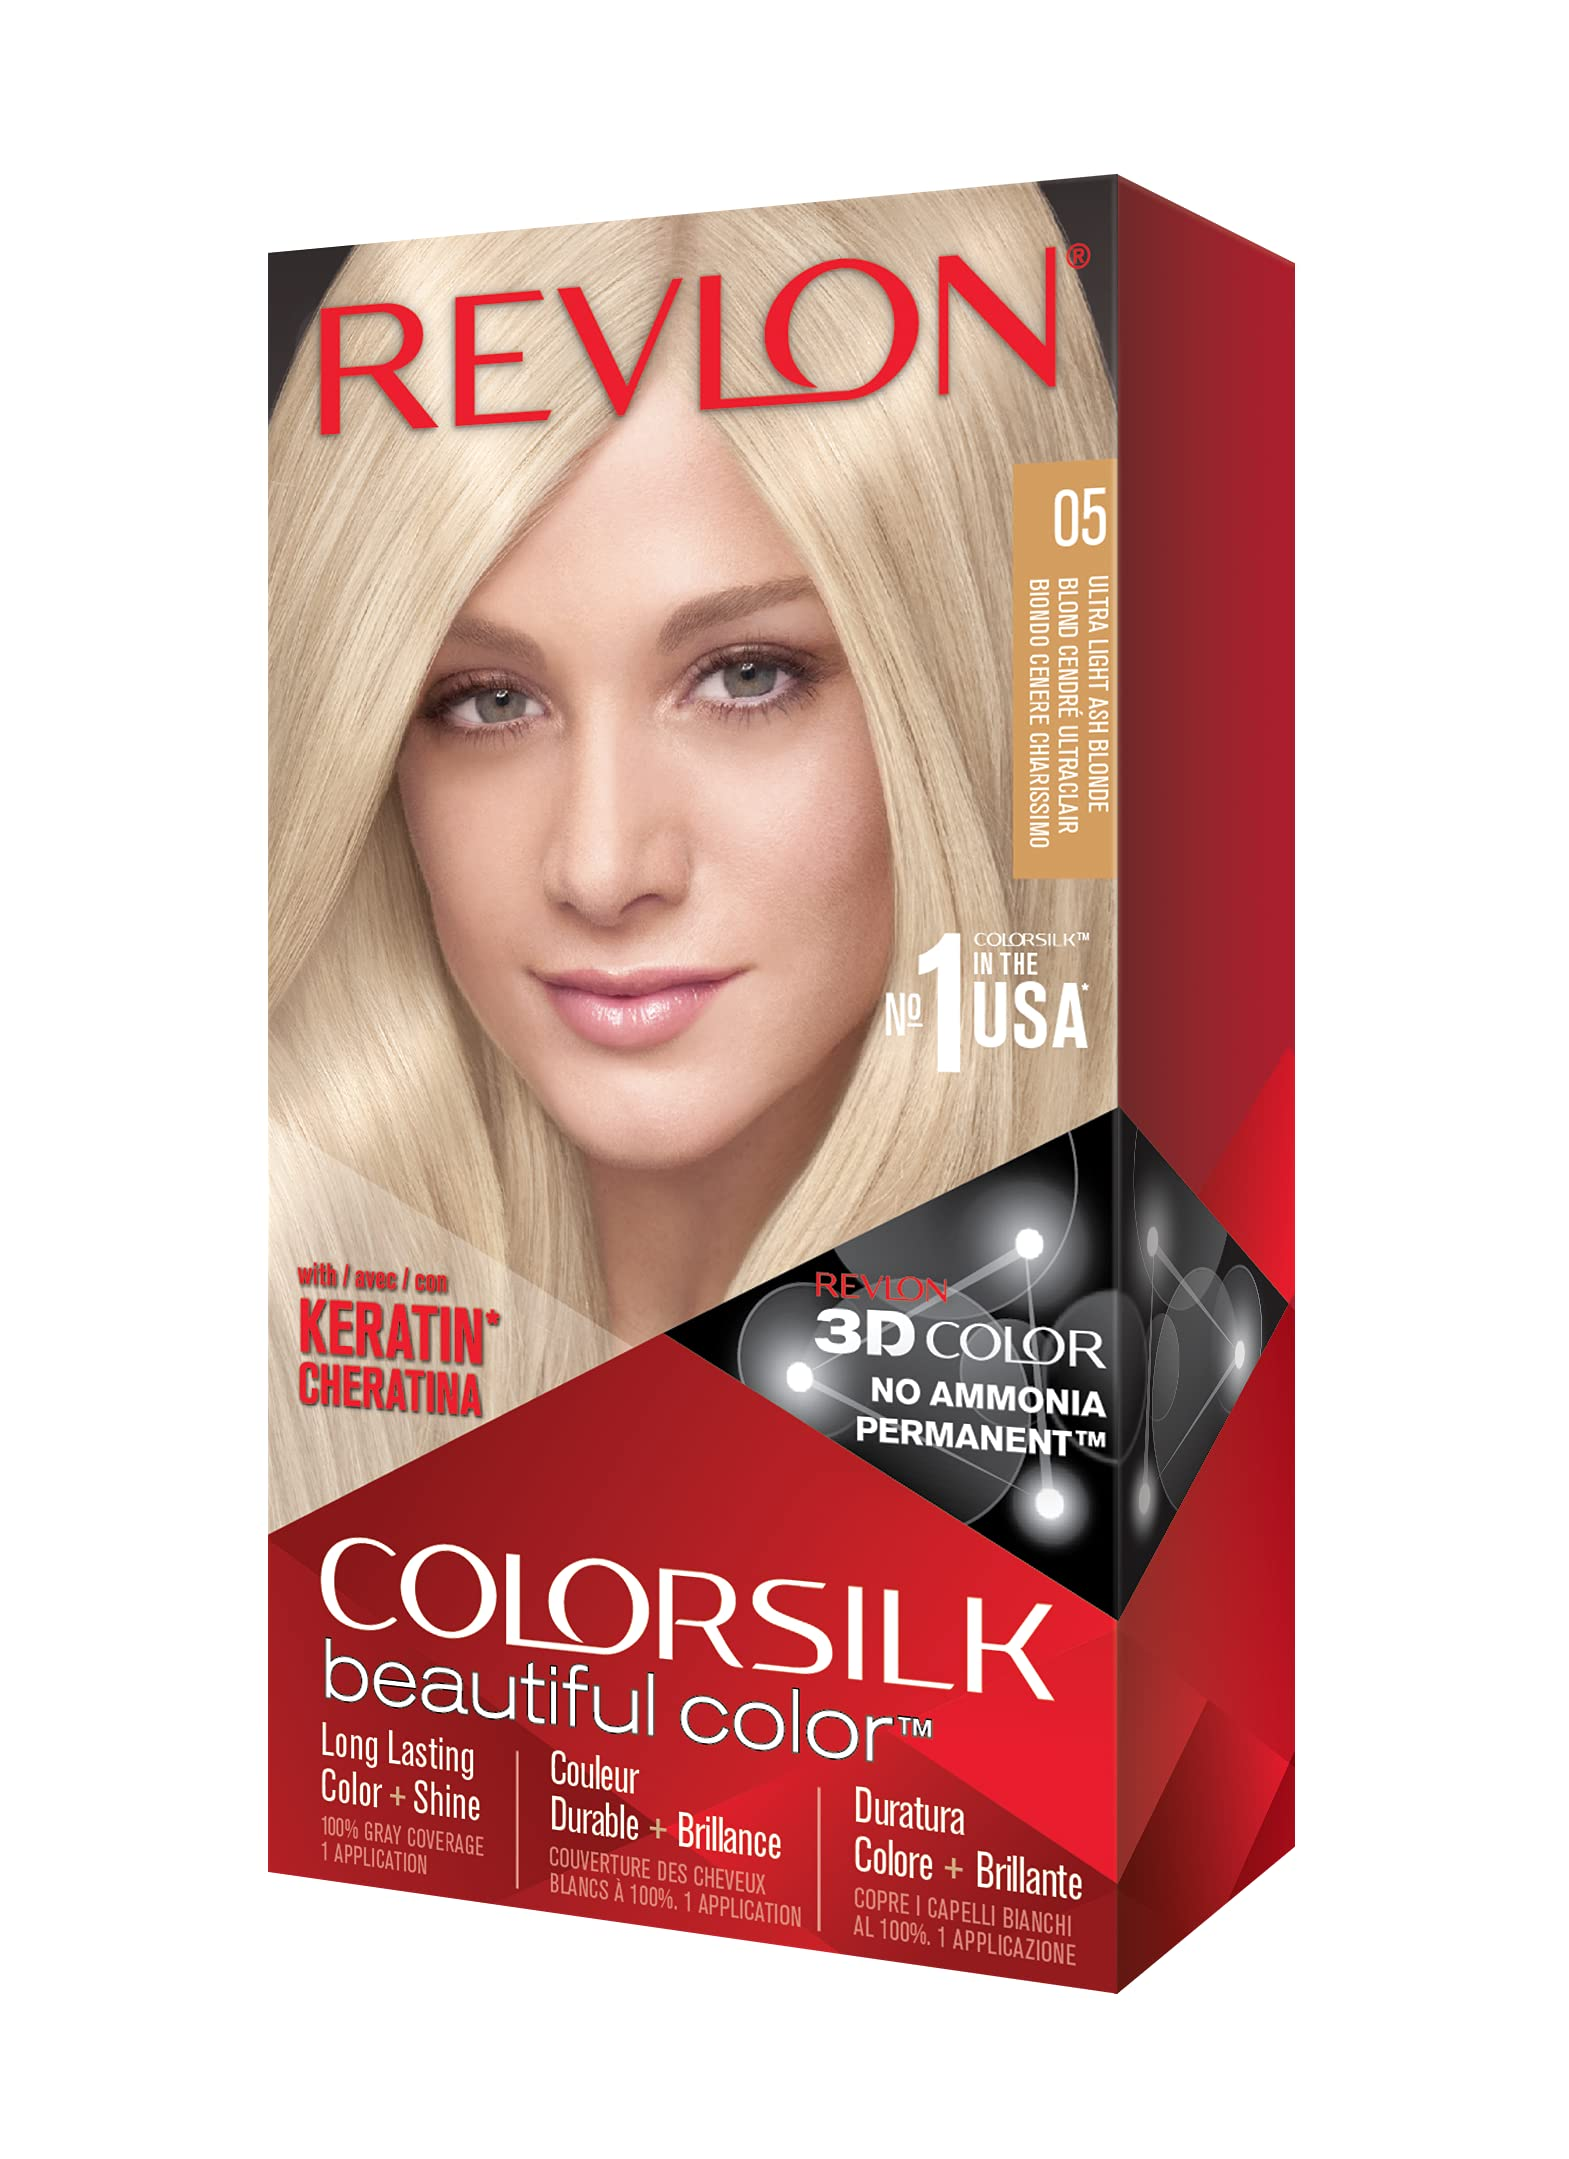 REVLON Colorsilk Beautiful Color Permanent Hair Color with 3D Gel Technology & Keratin, 100% Gray Coverage Hair Dye, 05 Ultra Light Ash Blonde